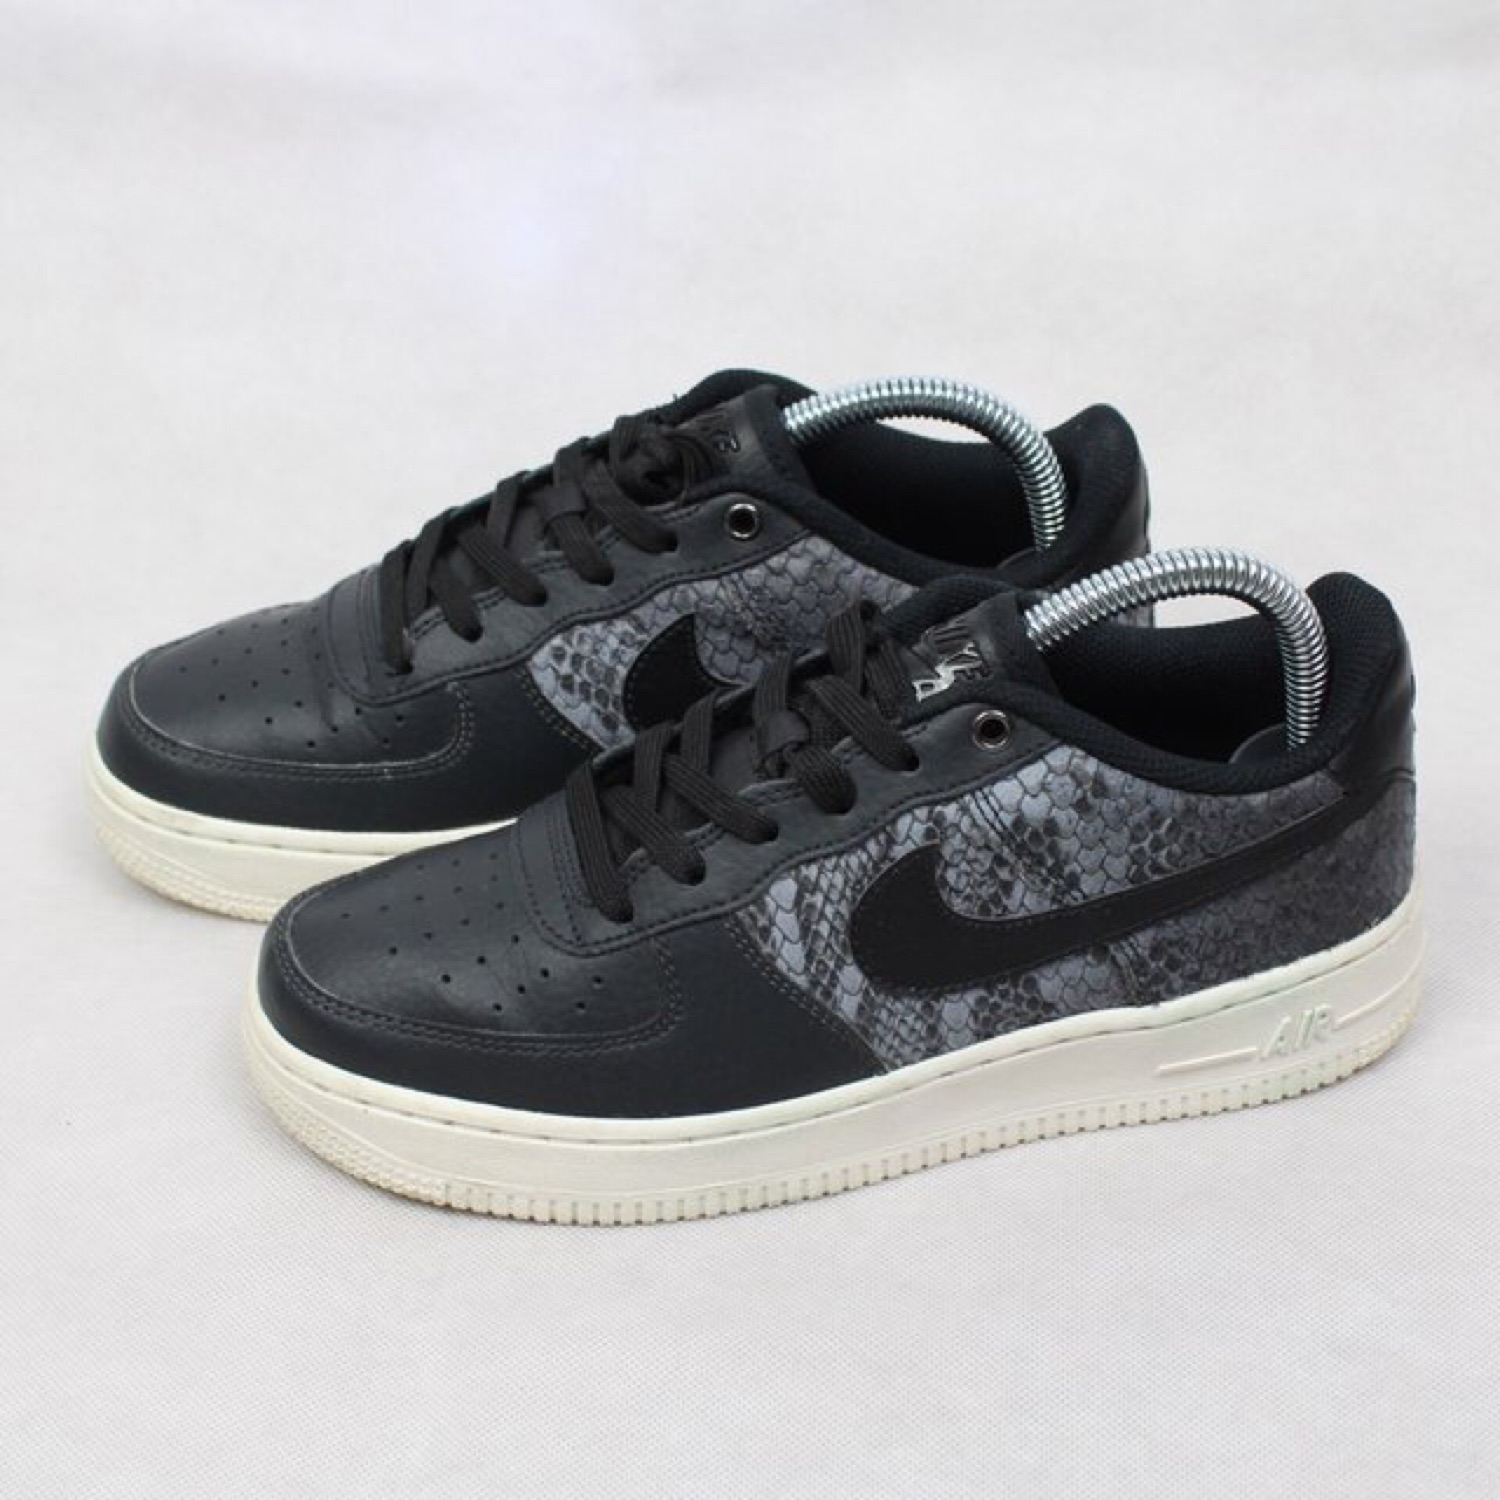 Nike Air Force 1 Af1 Trainers Size Uk 5